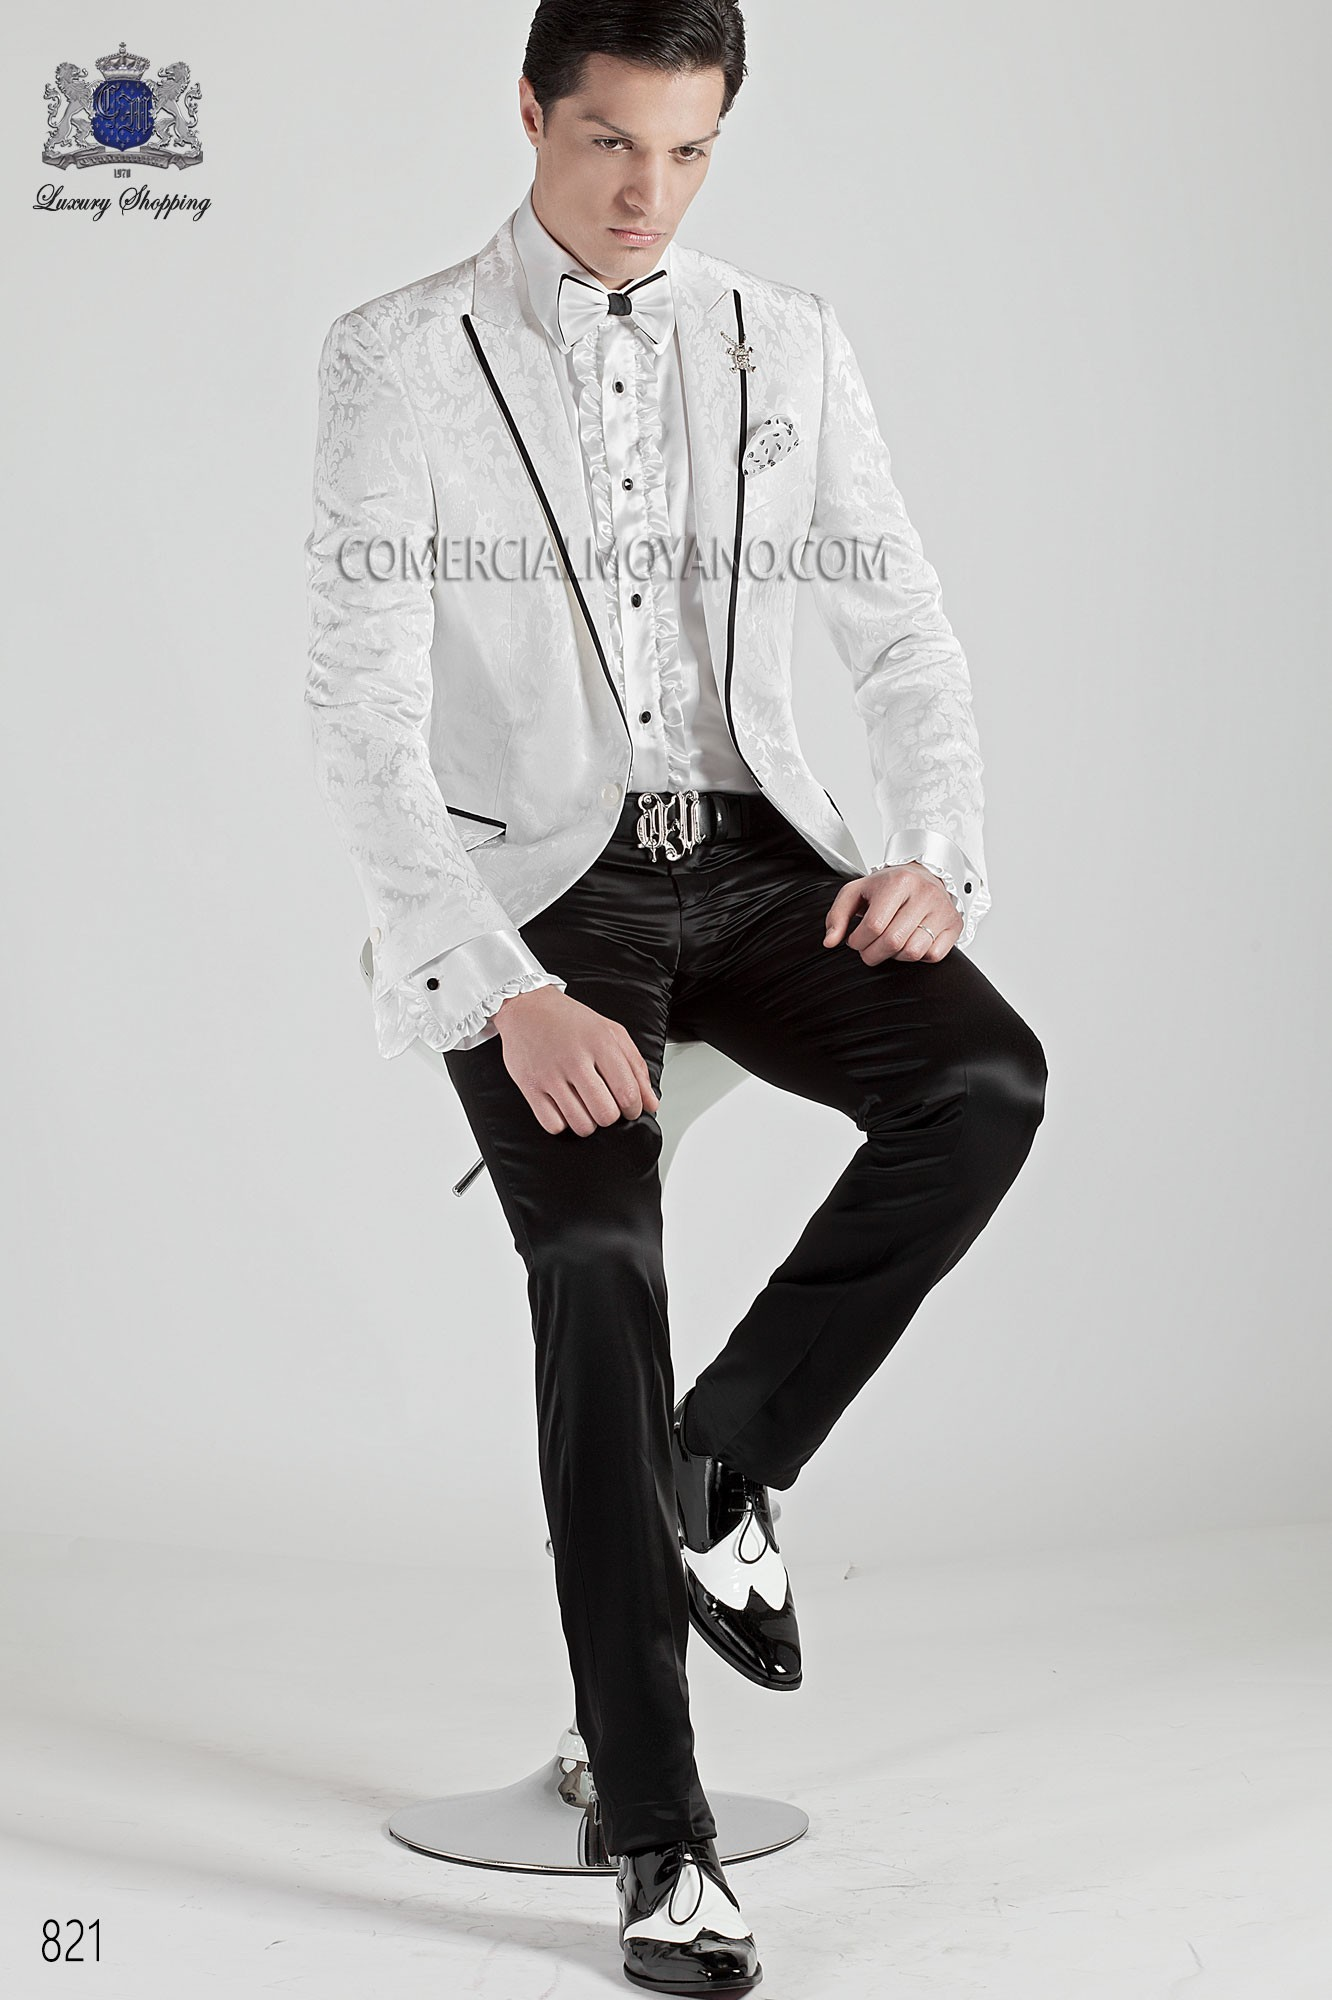 Emotion white men wedding suit model 821 Ottavio Nuccio Gala